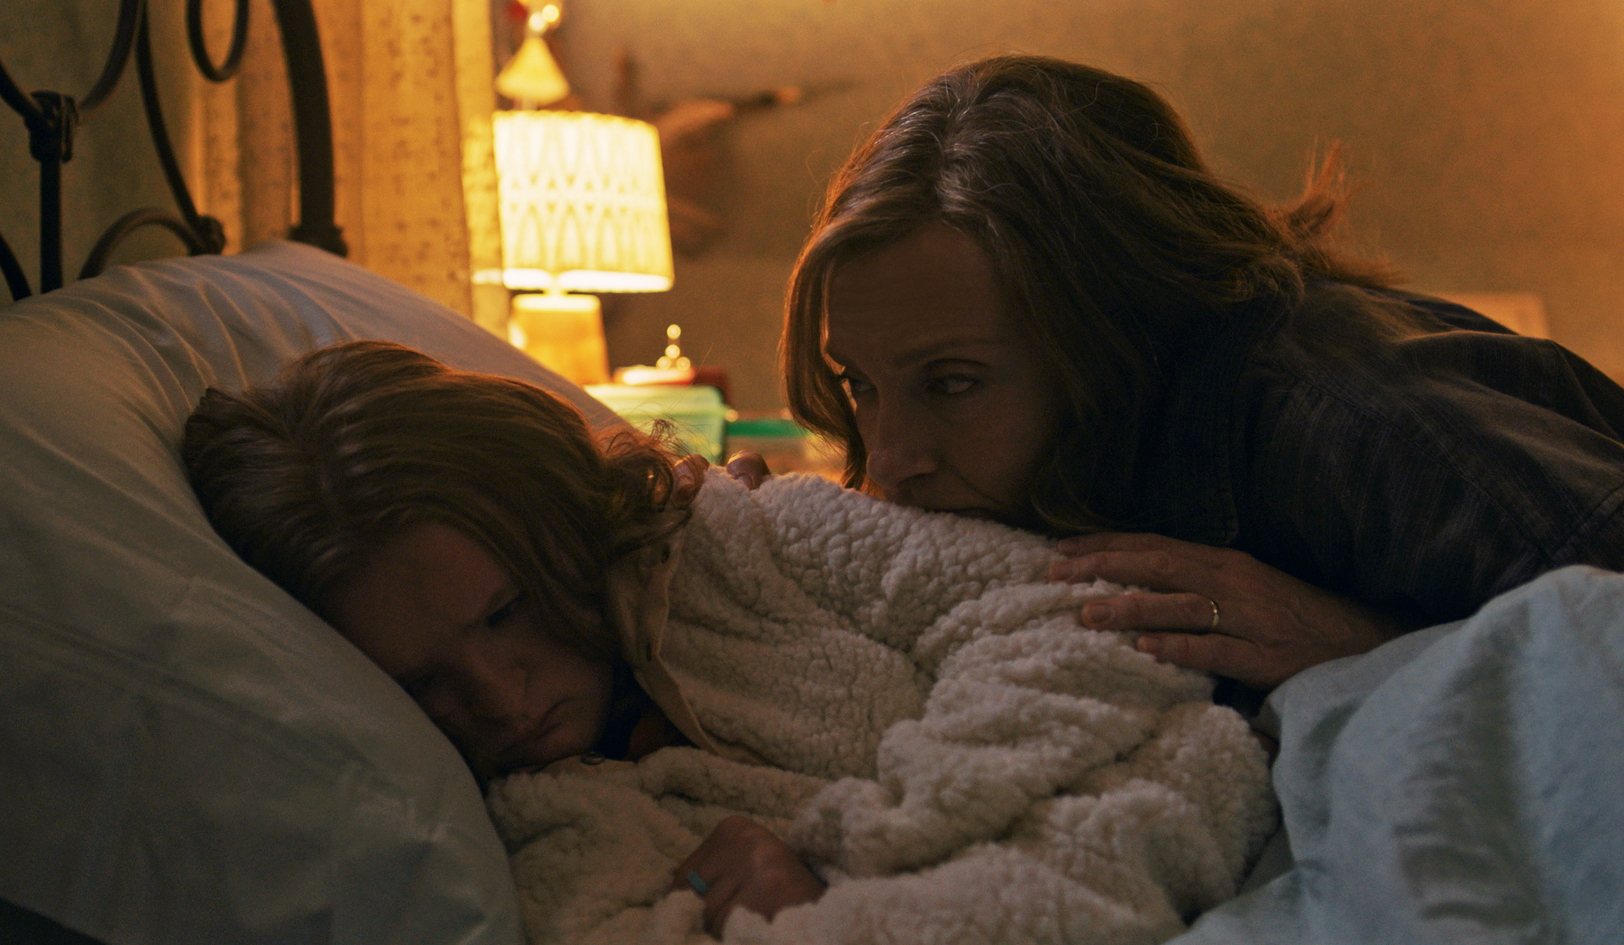 Toni Collette and Milly Shapiro in Hereditary (2018)